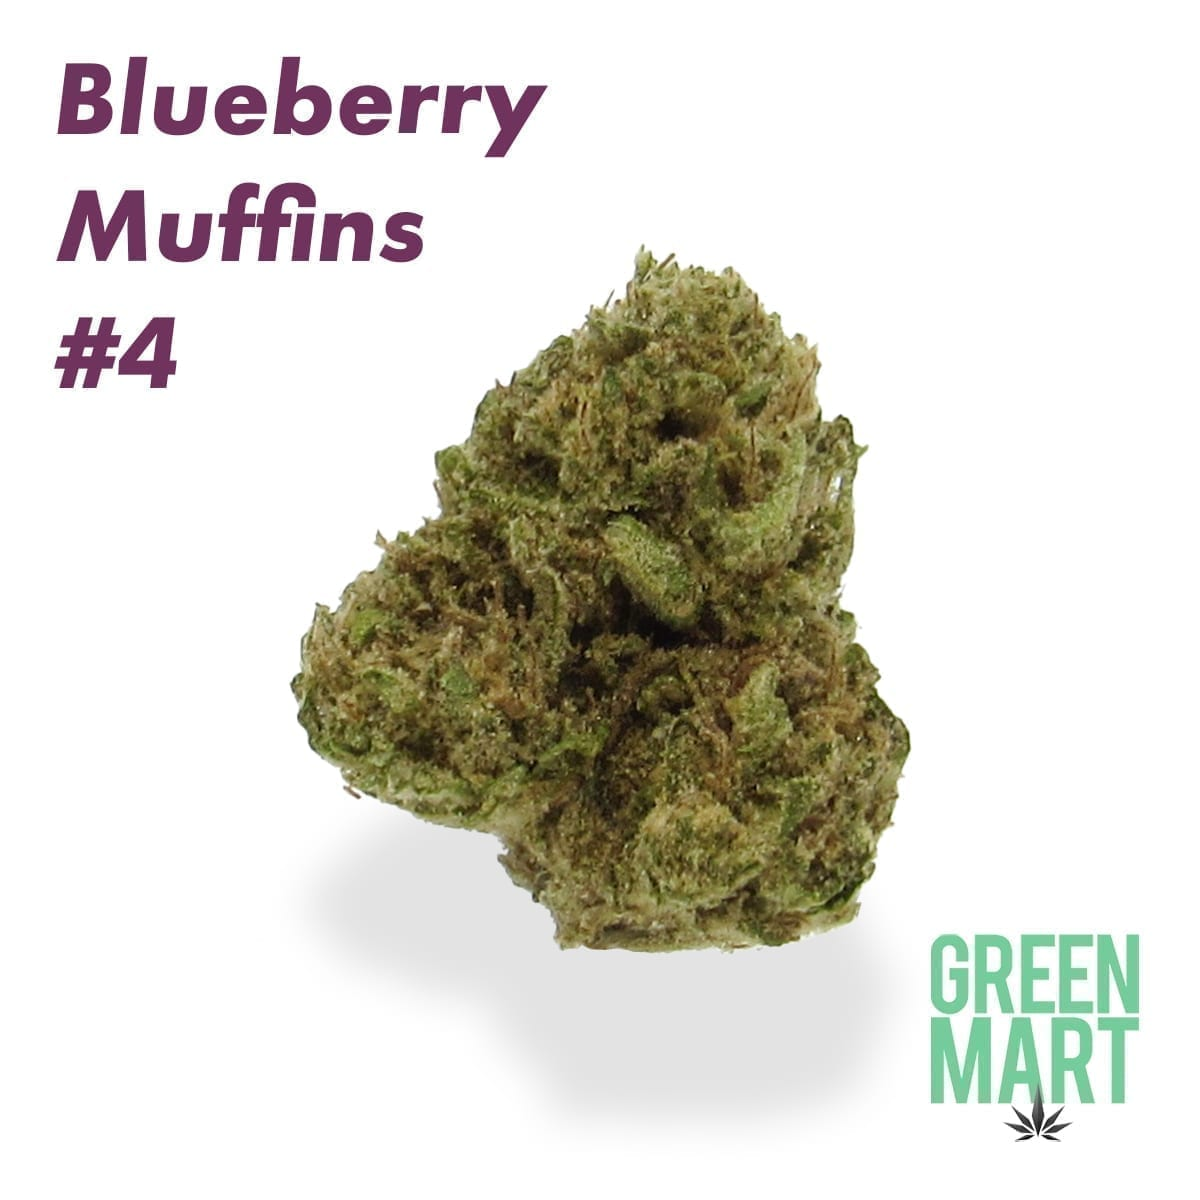 Blueberry Muffins #4